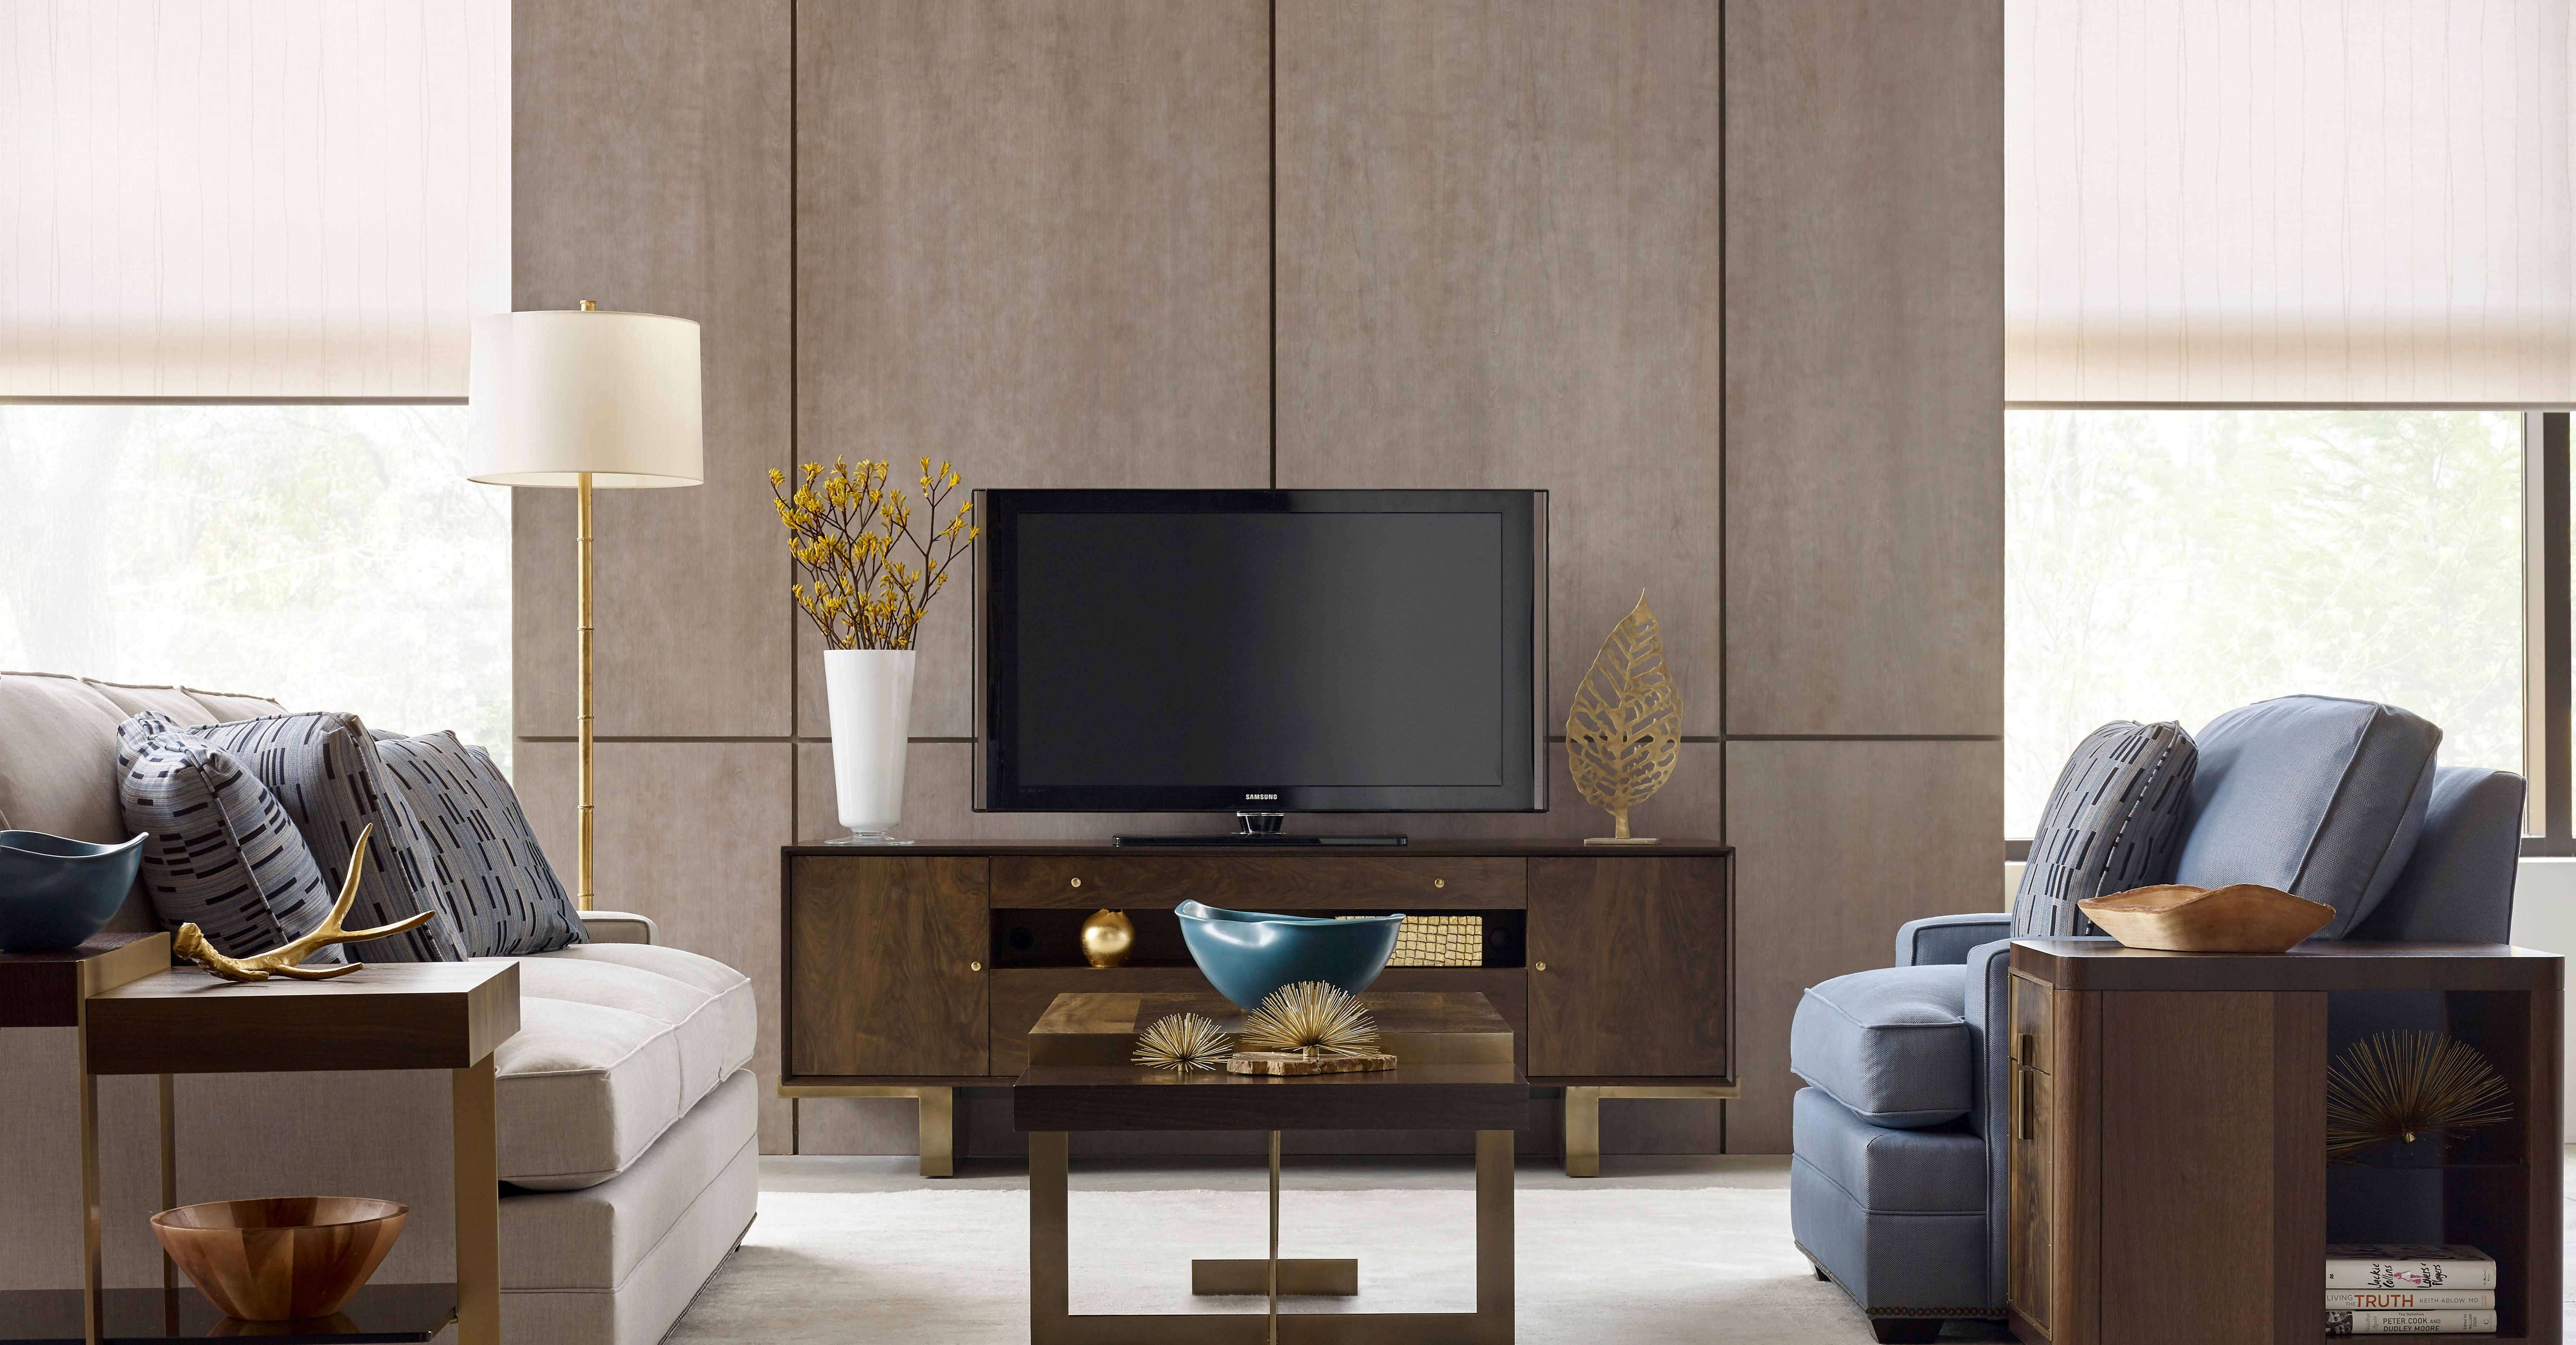 photo of a home entertainment setting with a tv stand, coffee table, and side table